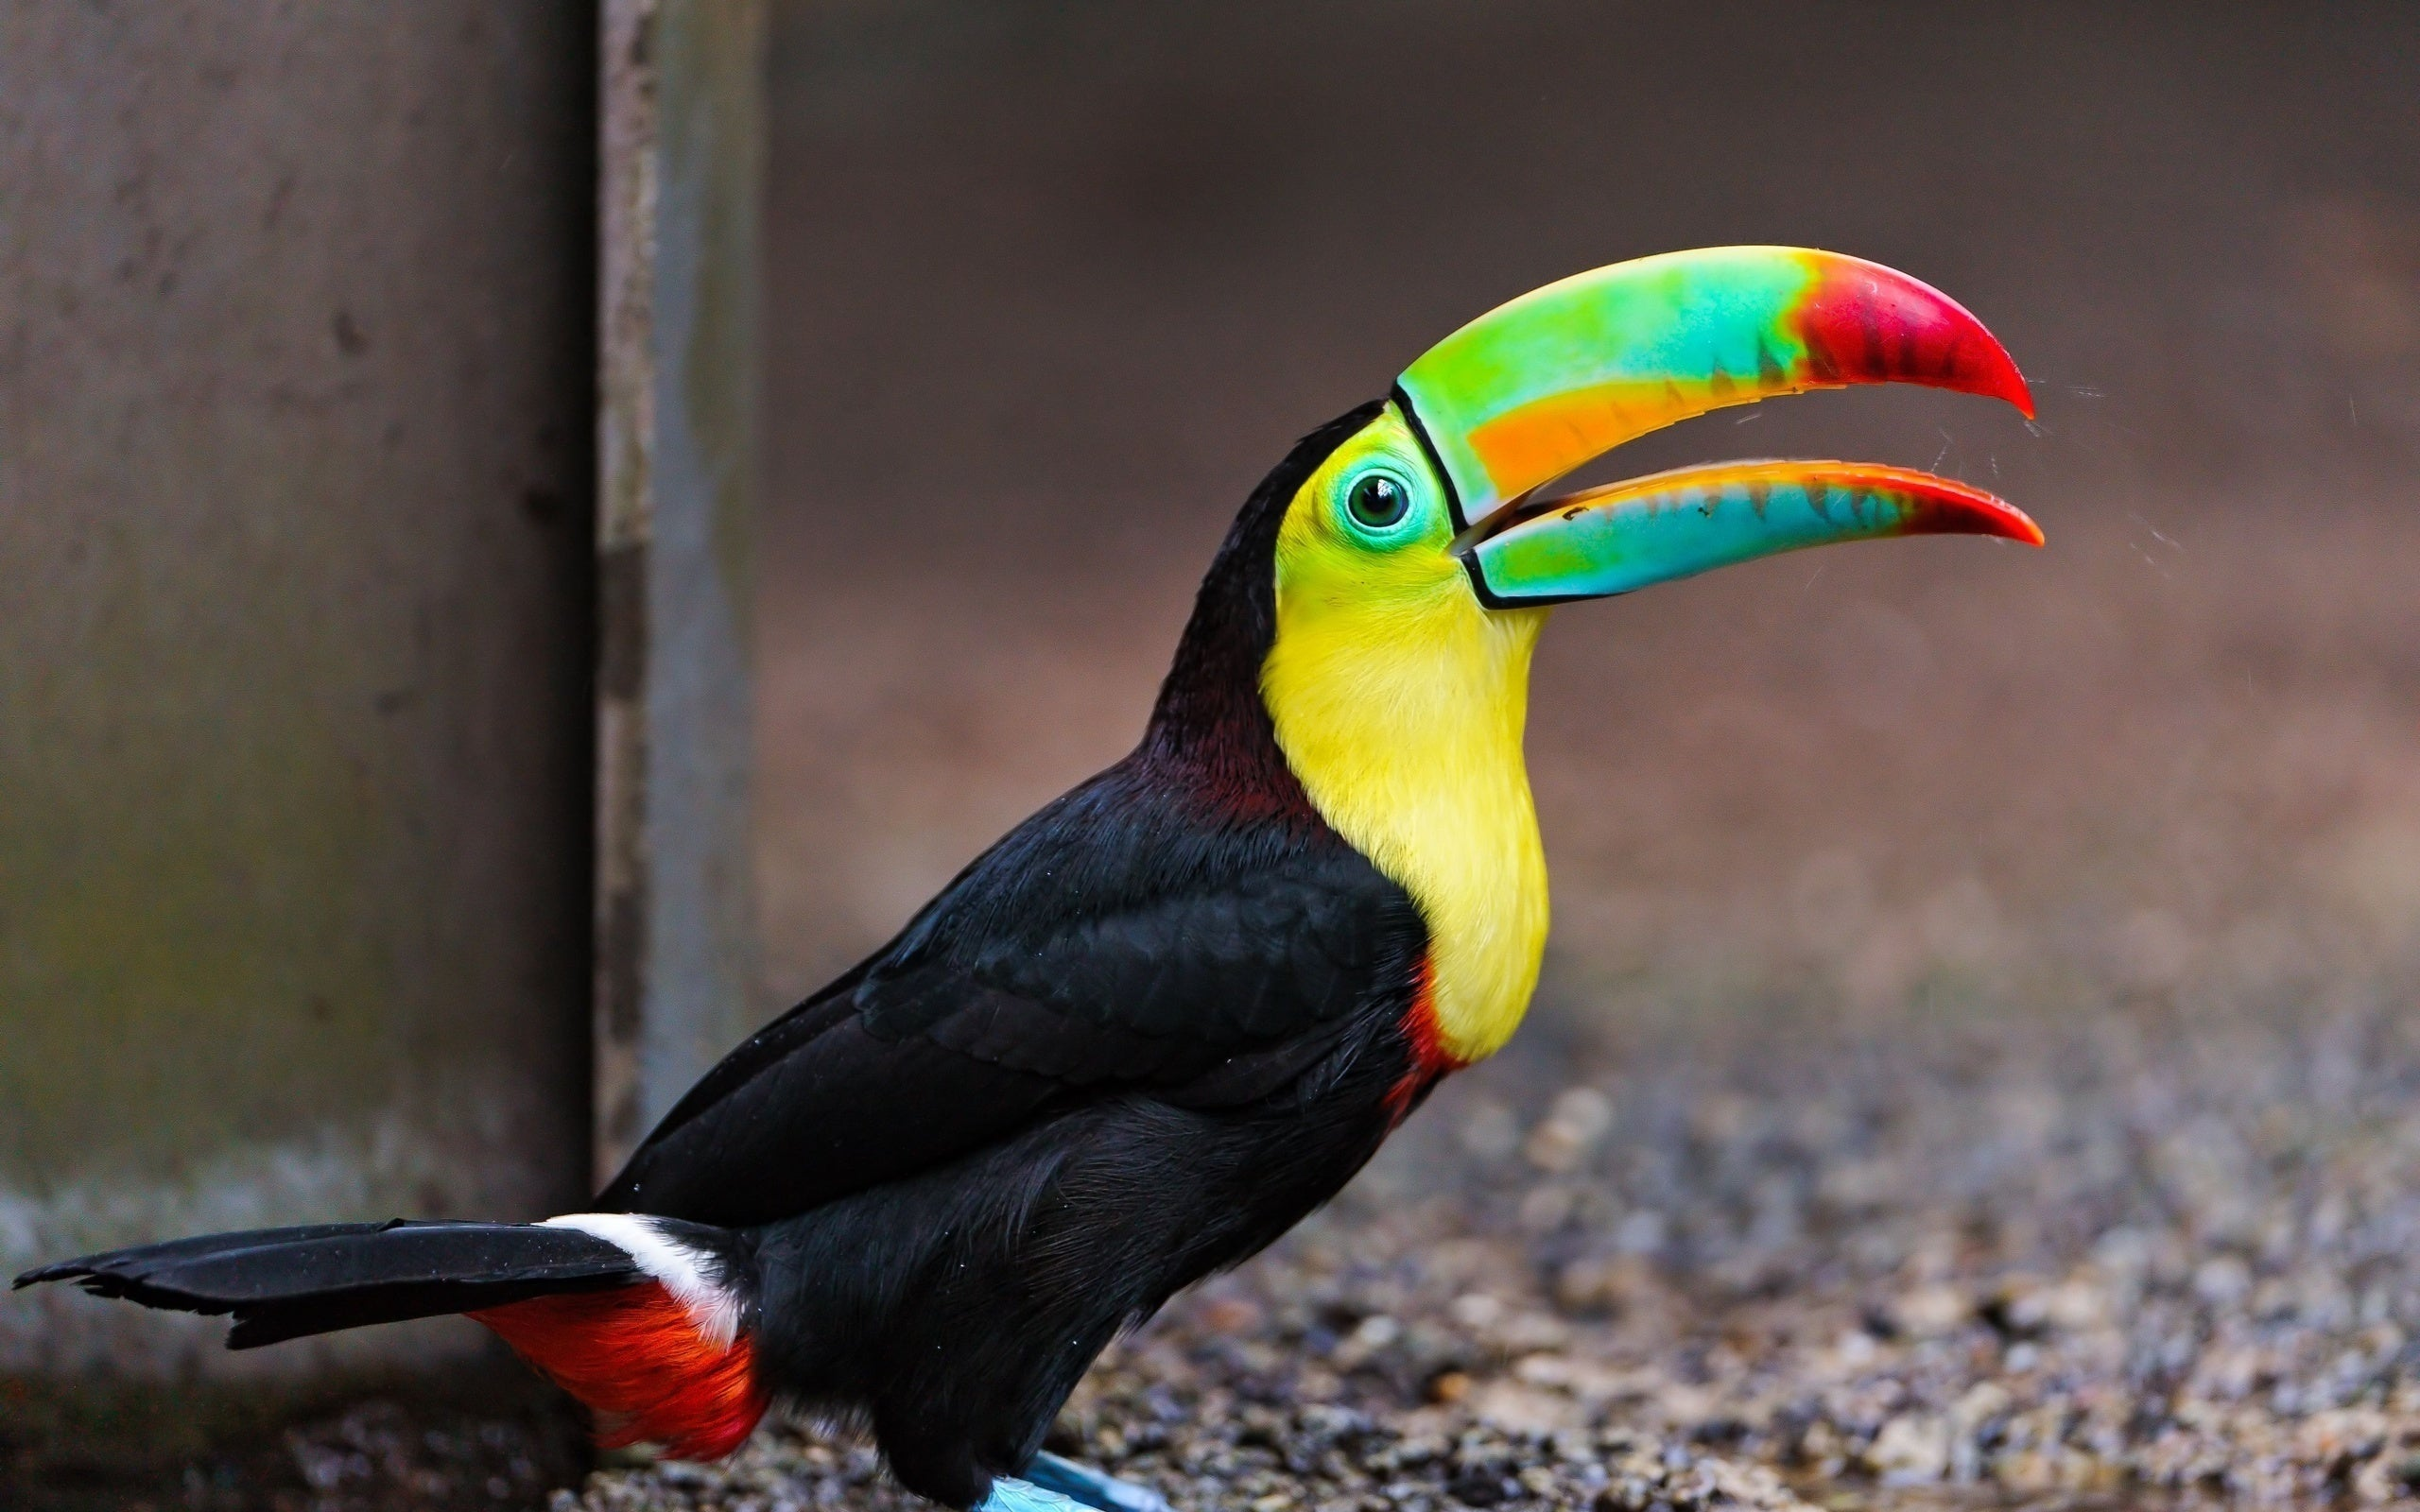 Can You Imagine a World Without the Toucan?